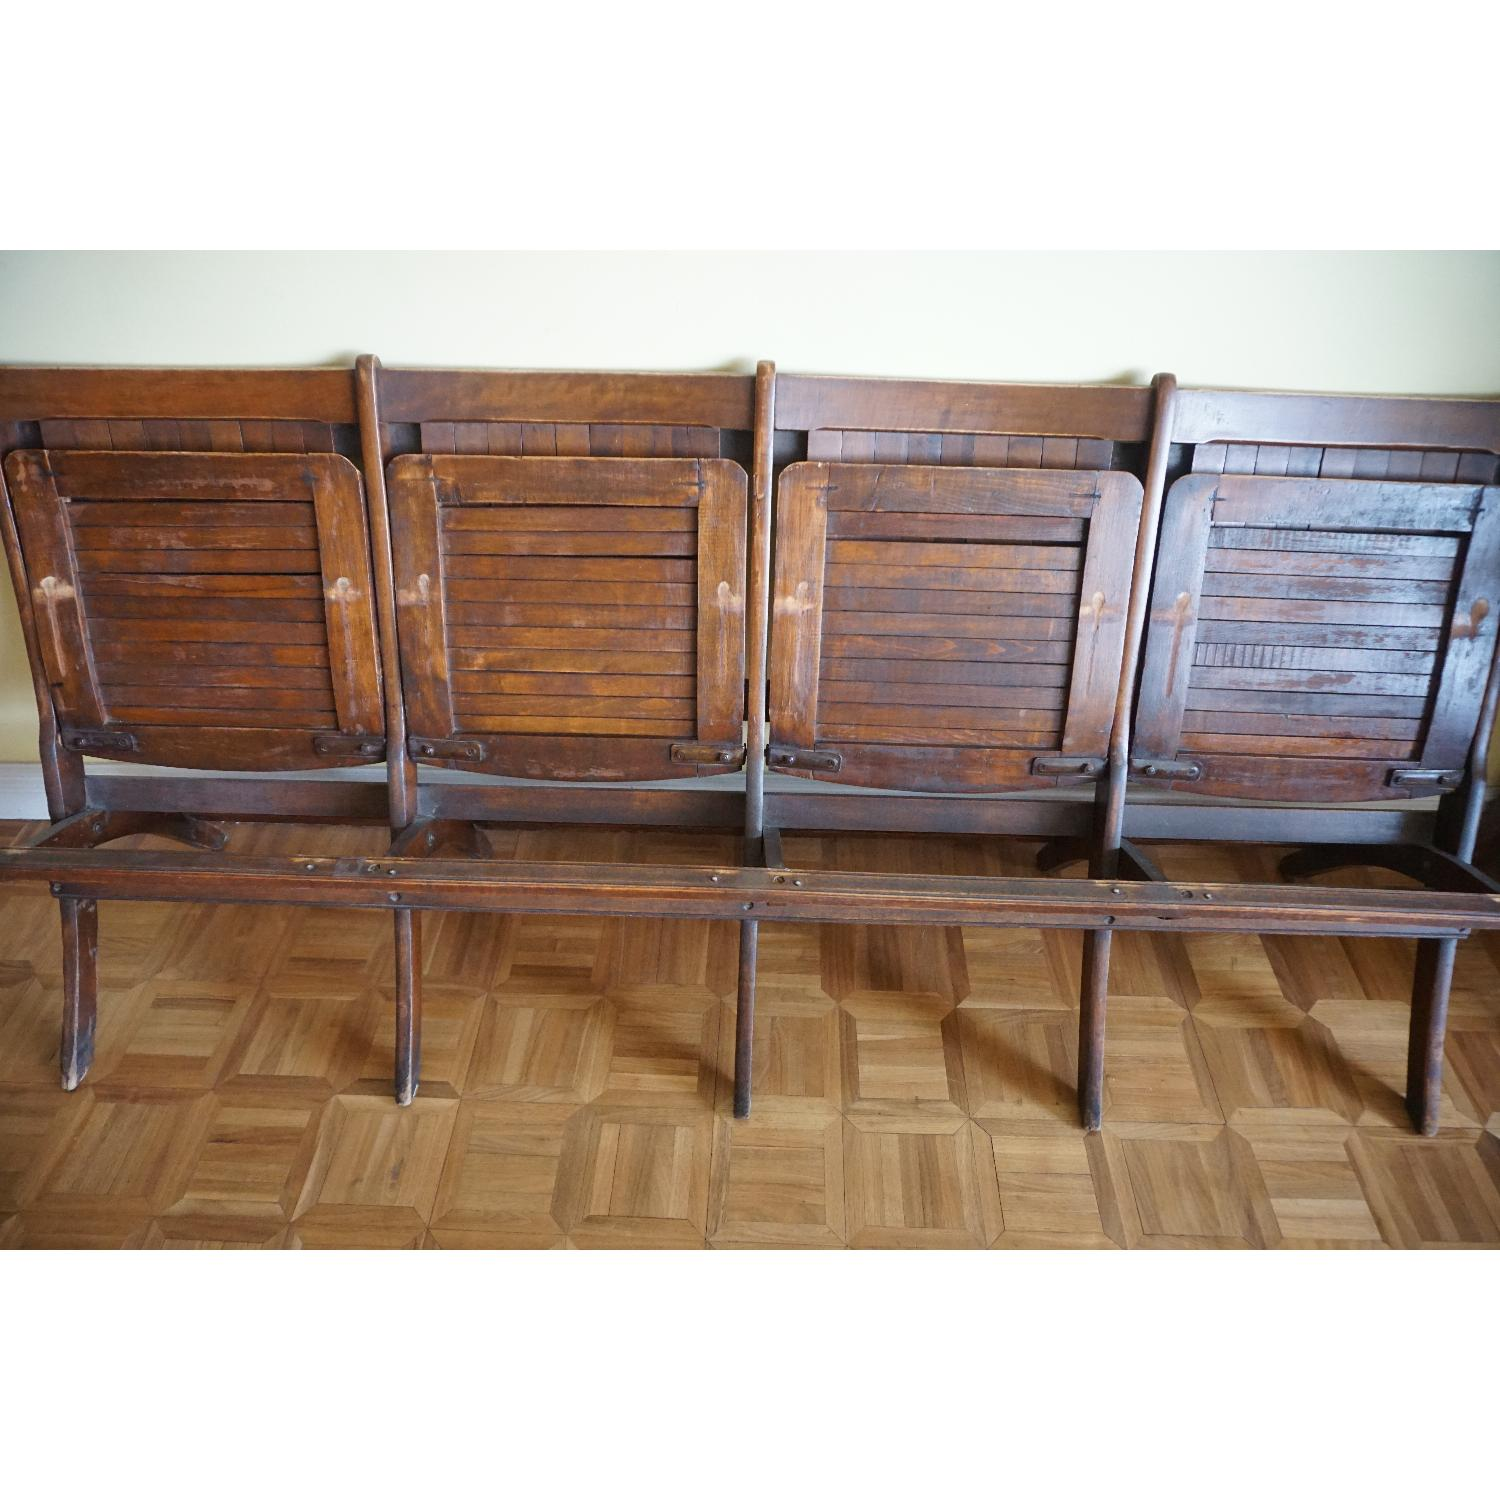 Vintage Harlem Movie Theater Wooden Bench Seats - image-8